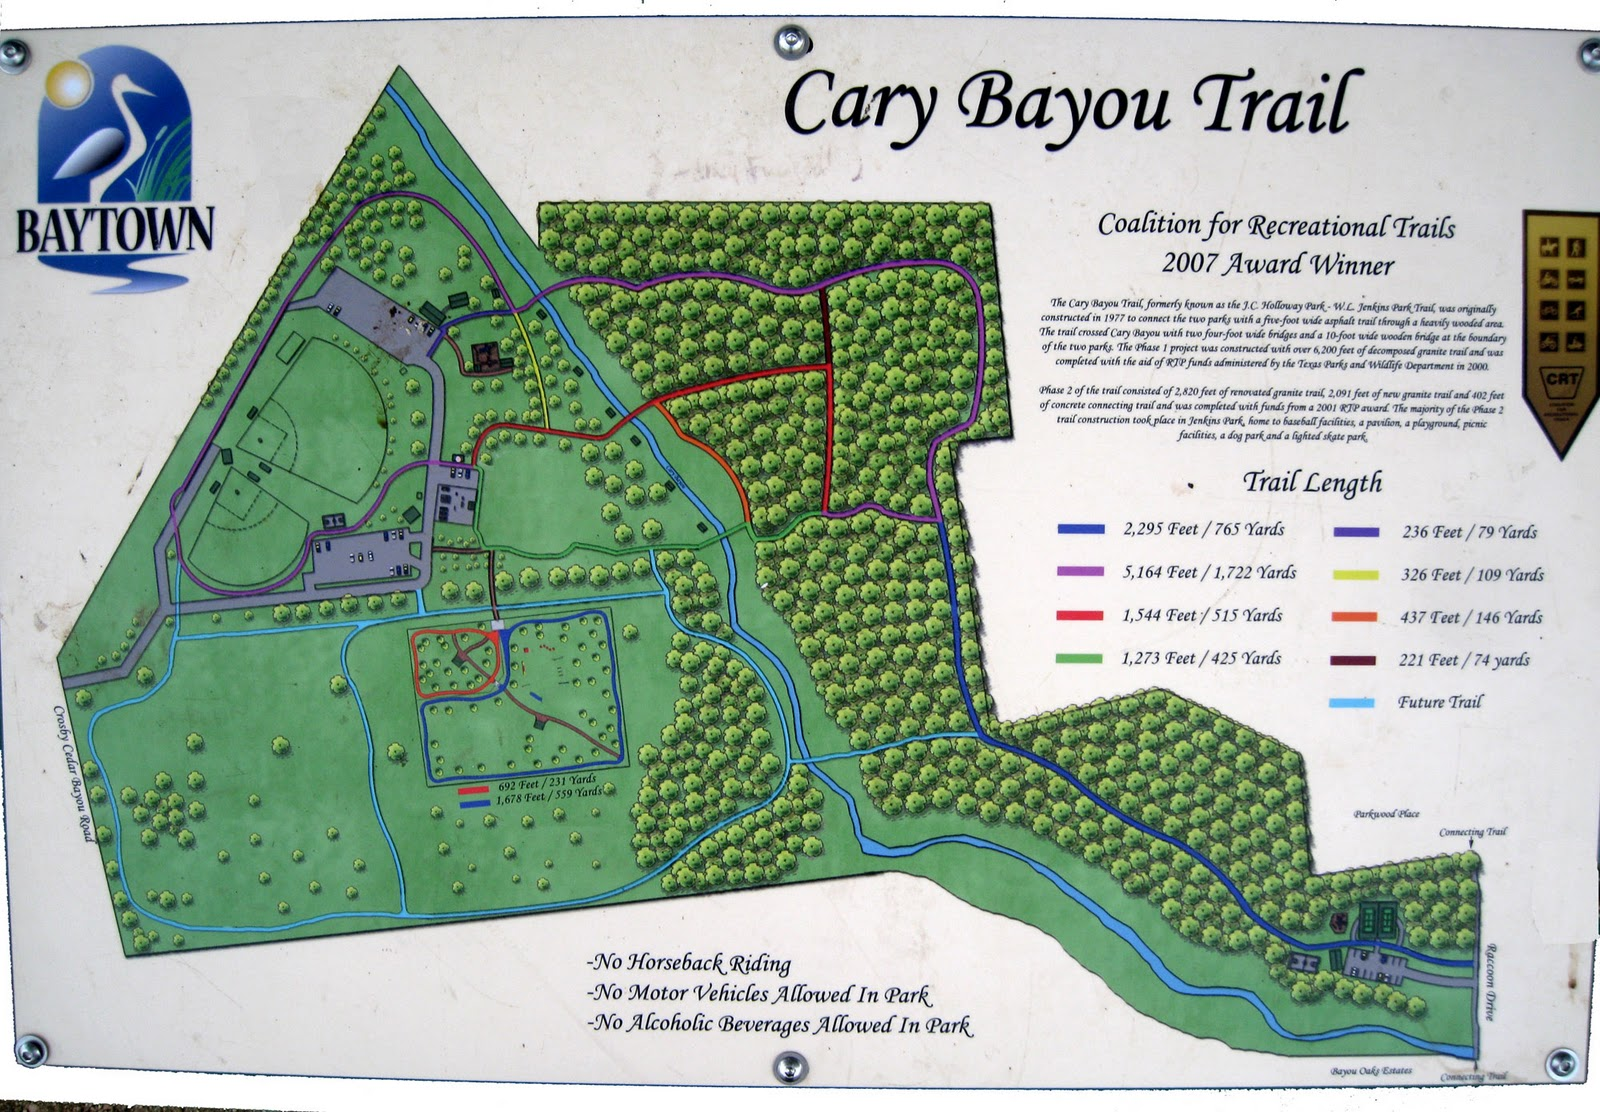 there is a proposed trail addition see map photo that will expand the trails considerably 3 new bridges are planned to span cary bayou